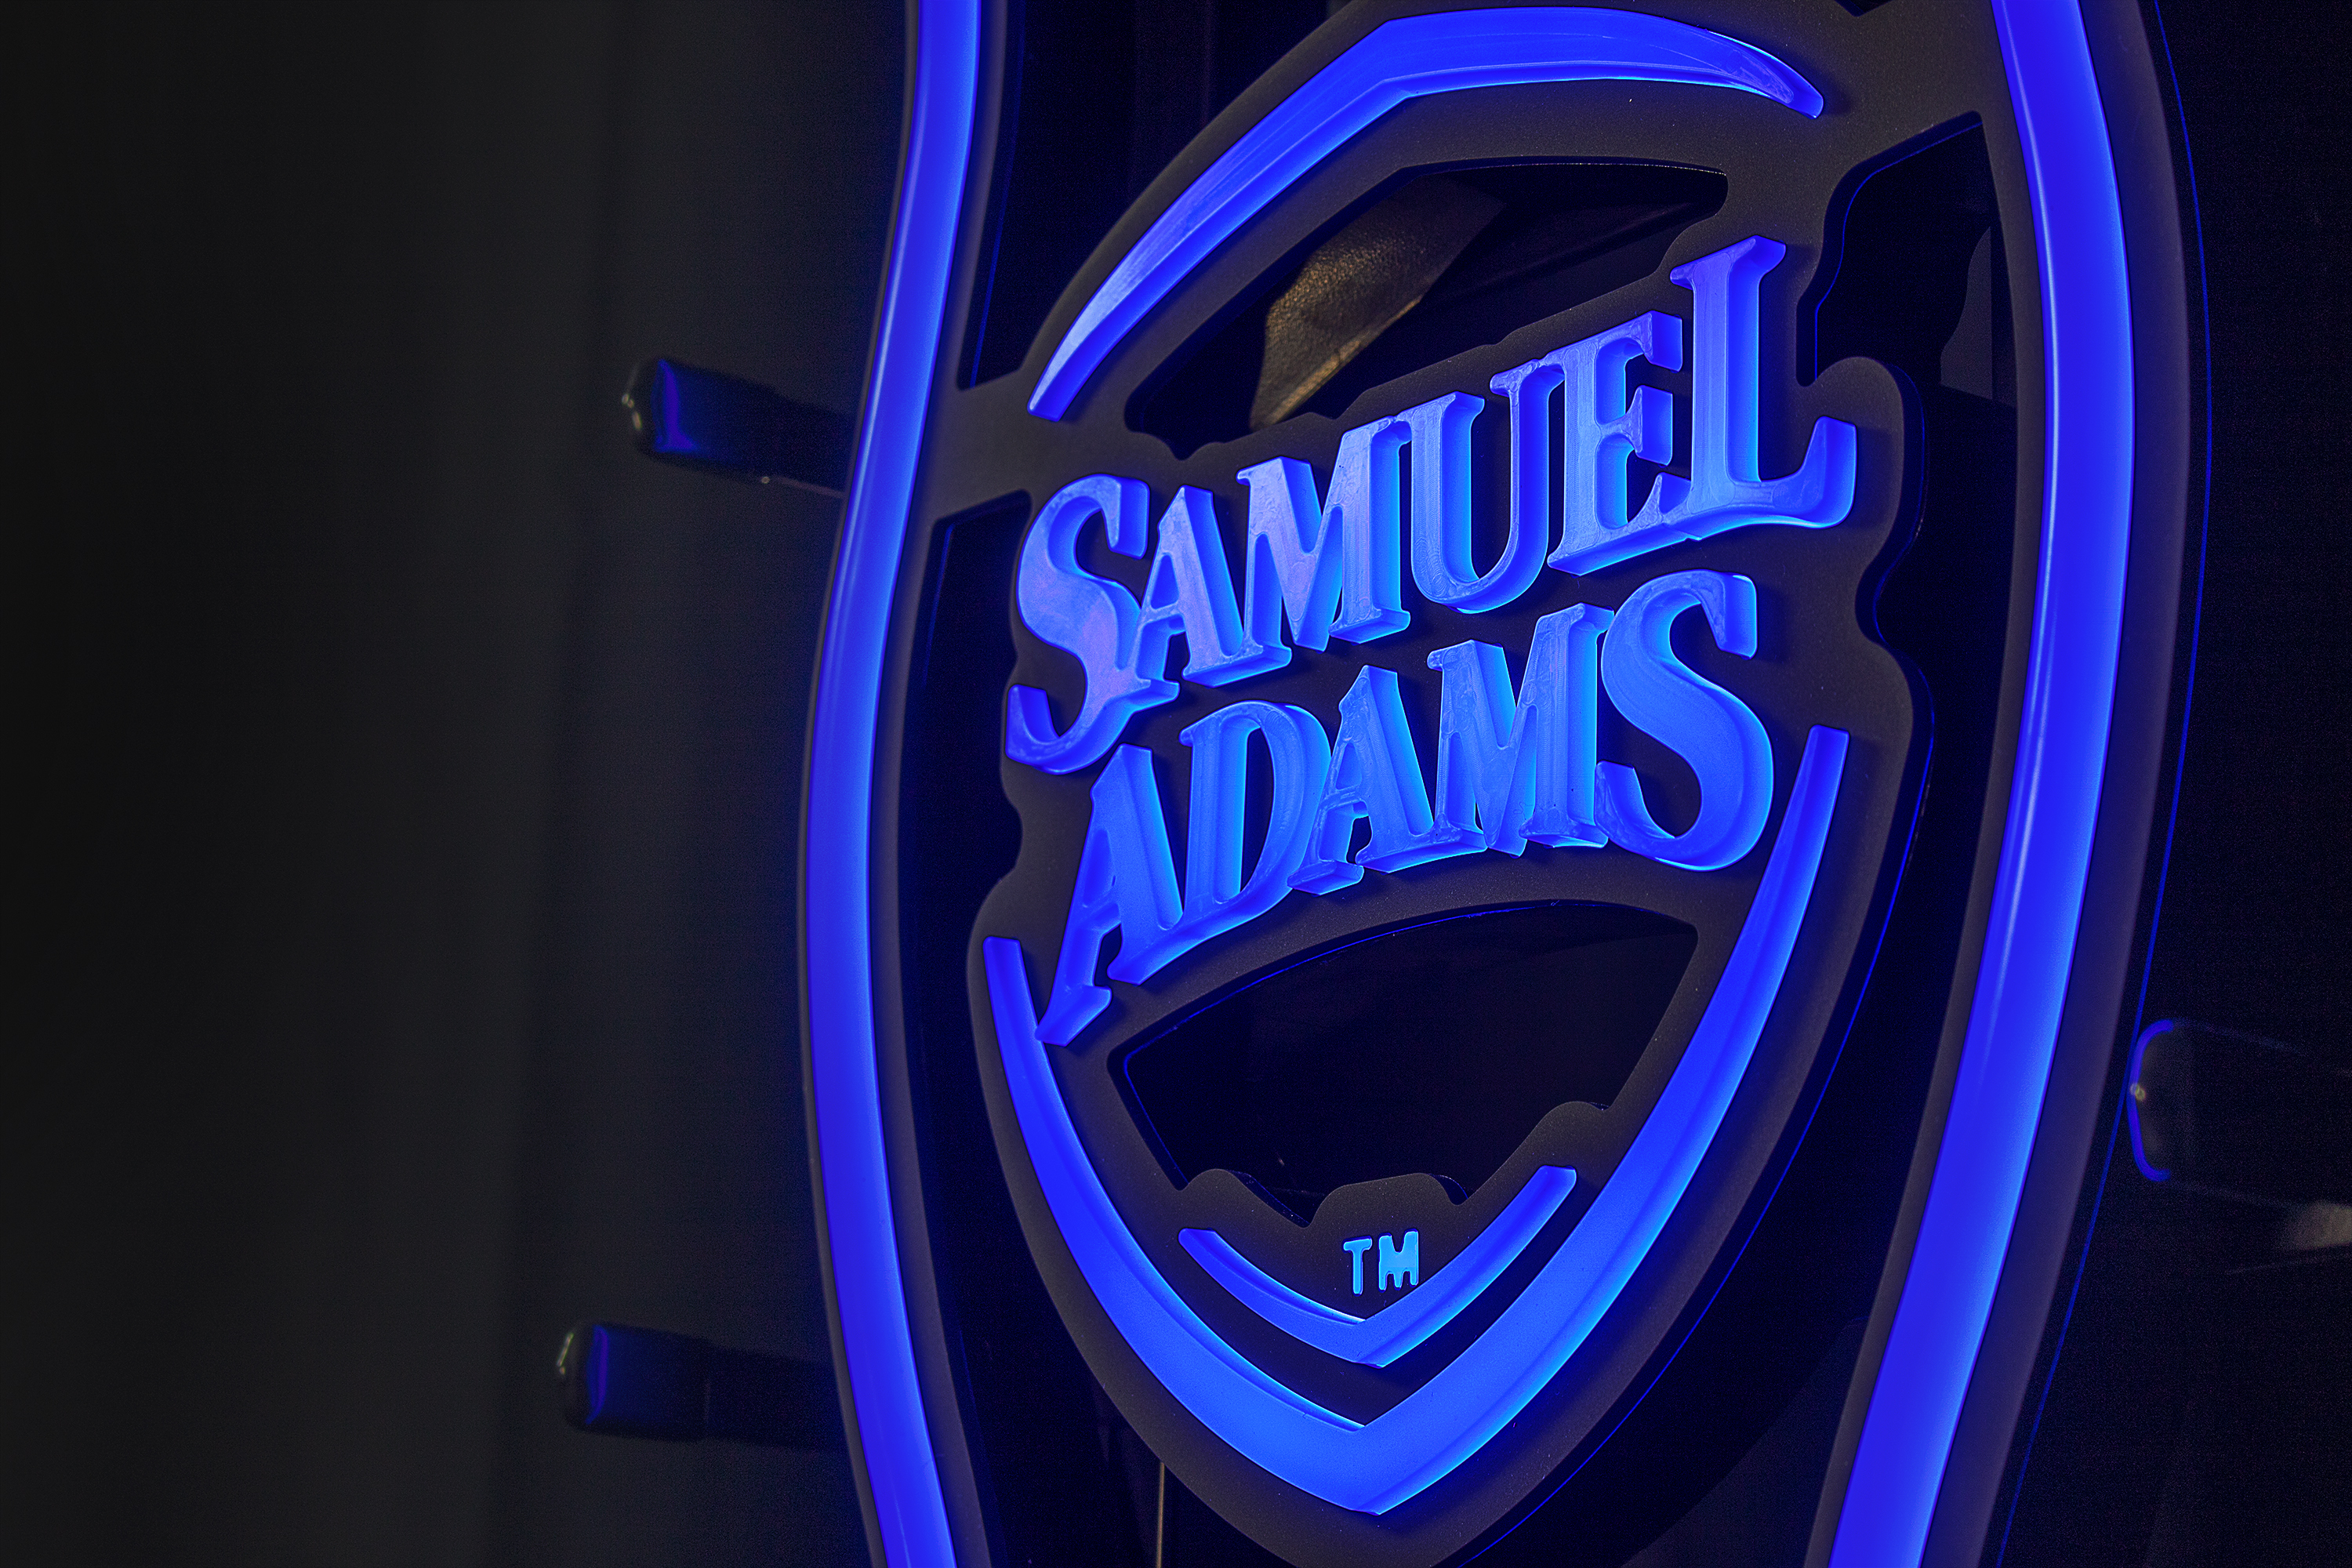 sam adams blue detail on